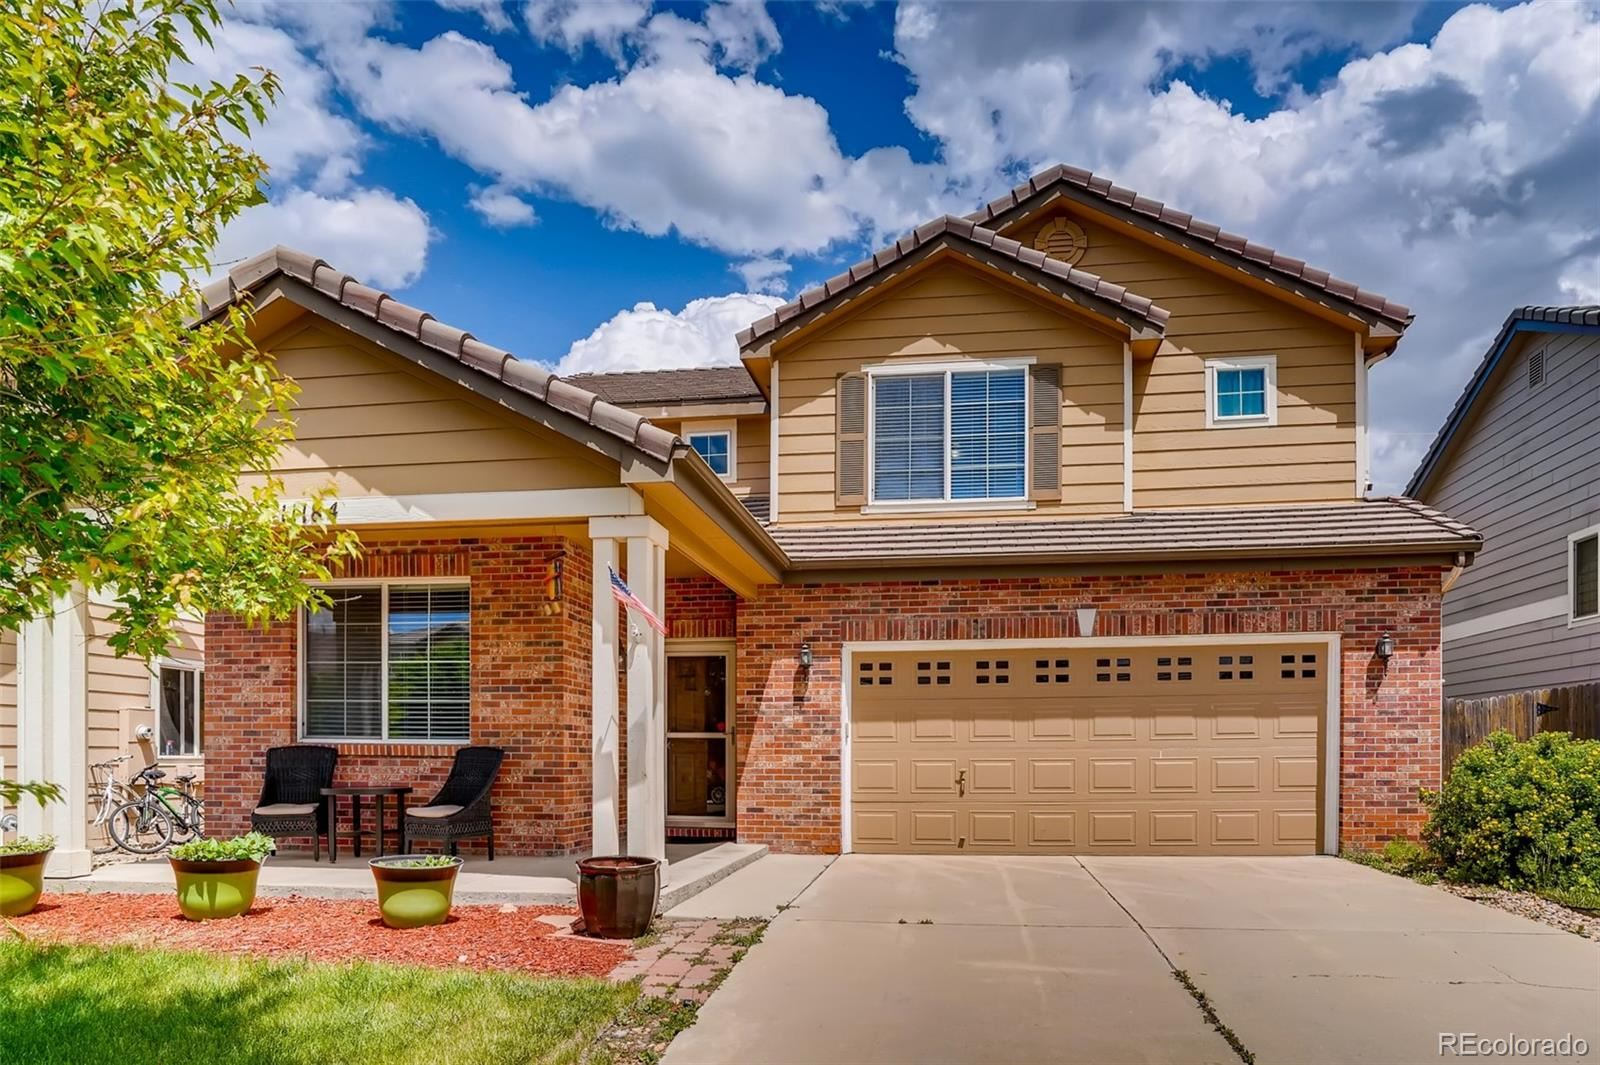 Photo of 11184 Kilberry Way, Parker, CO 80134 (MLS # 4284746)